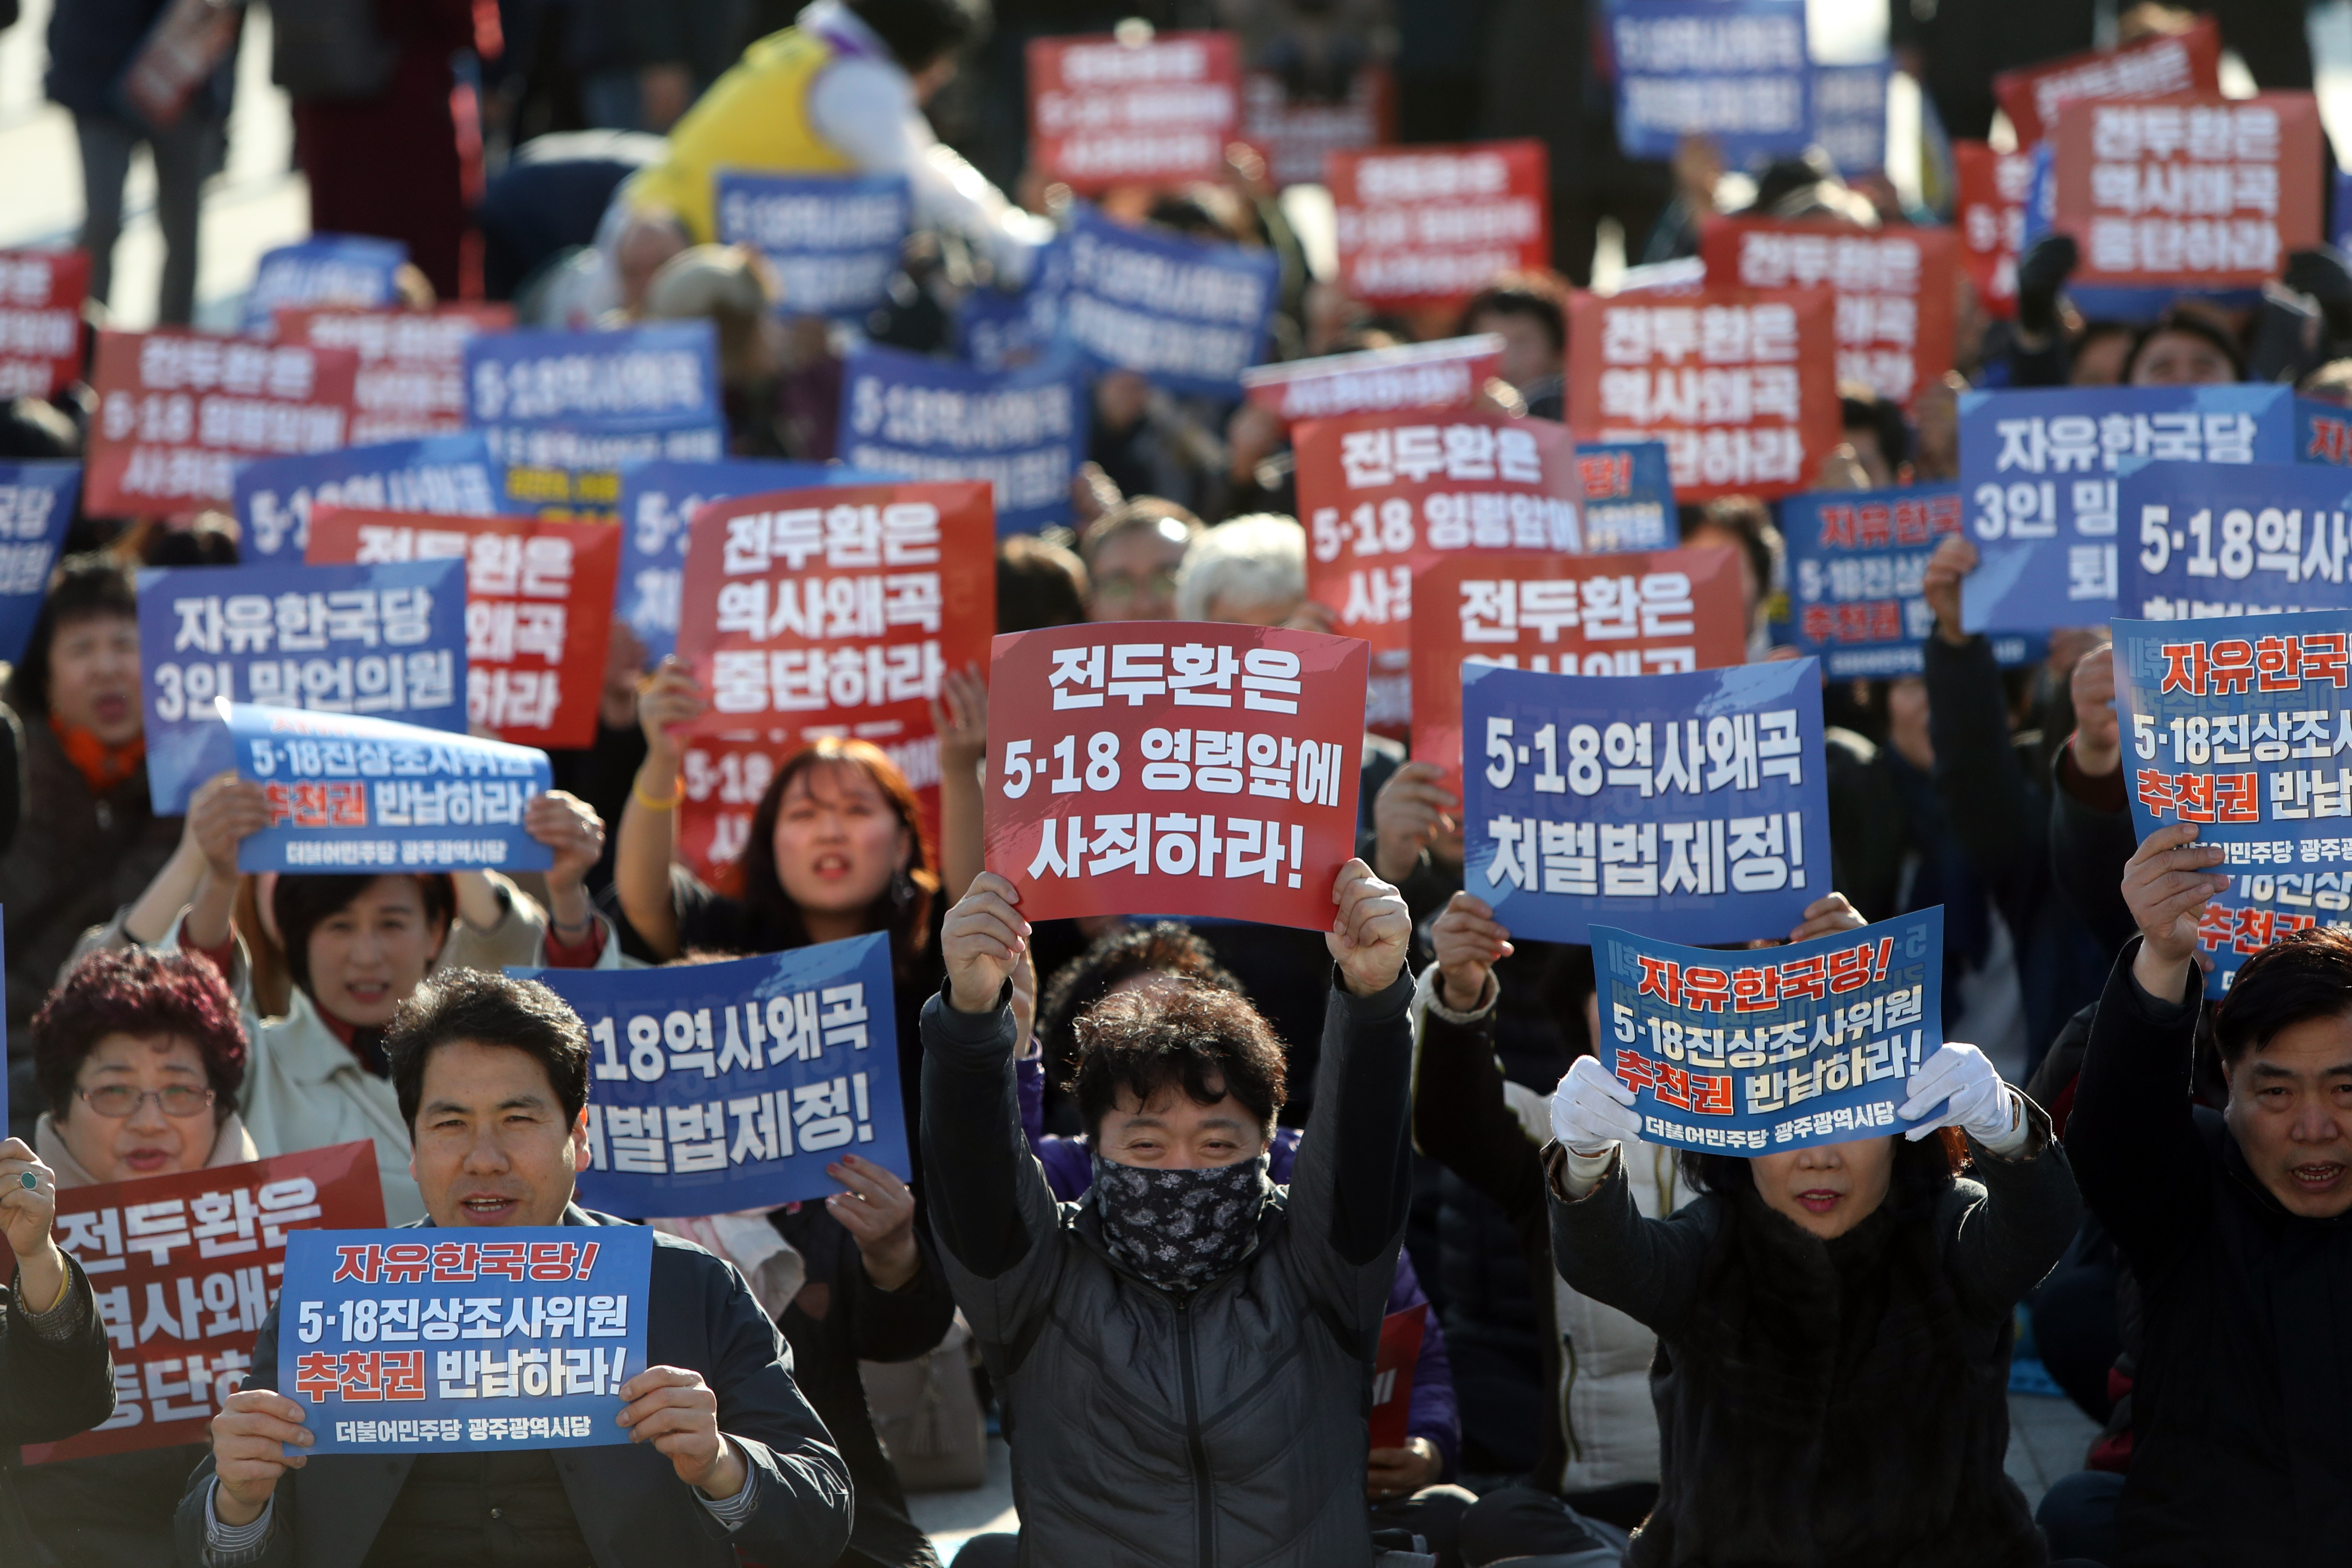 protesters call for the enactment of a special law that punishes those who distort the history of the May 18 Gwangju Democratization Movement <Photo: Yonhap News>